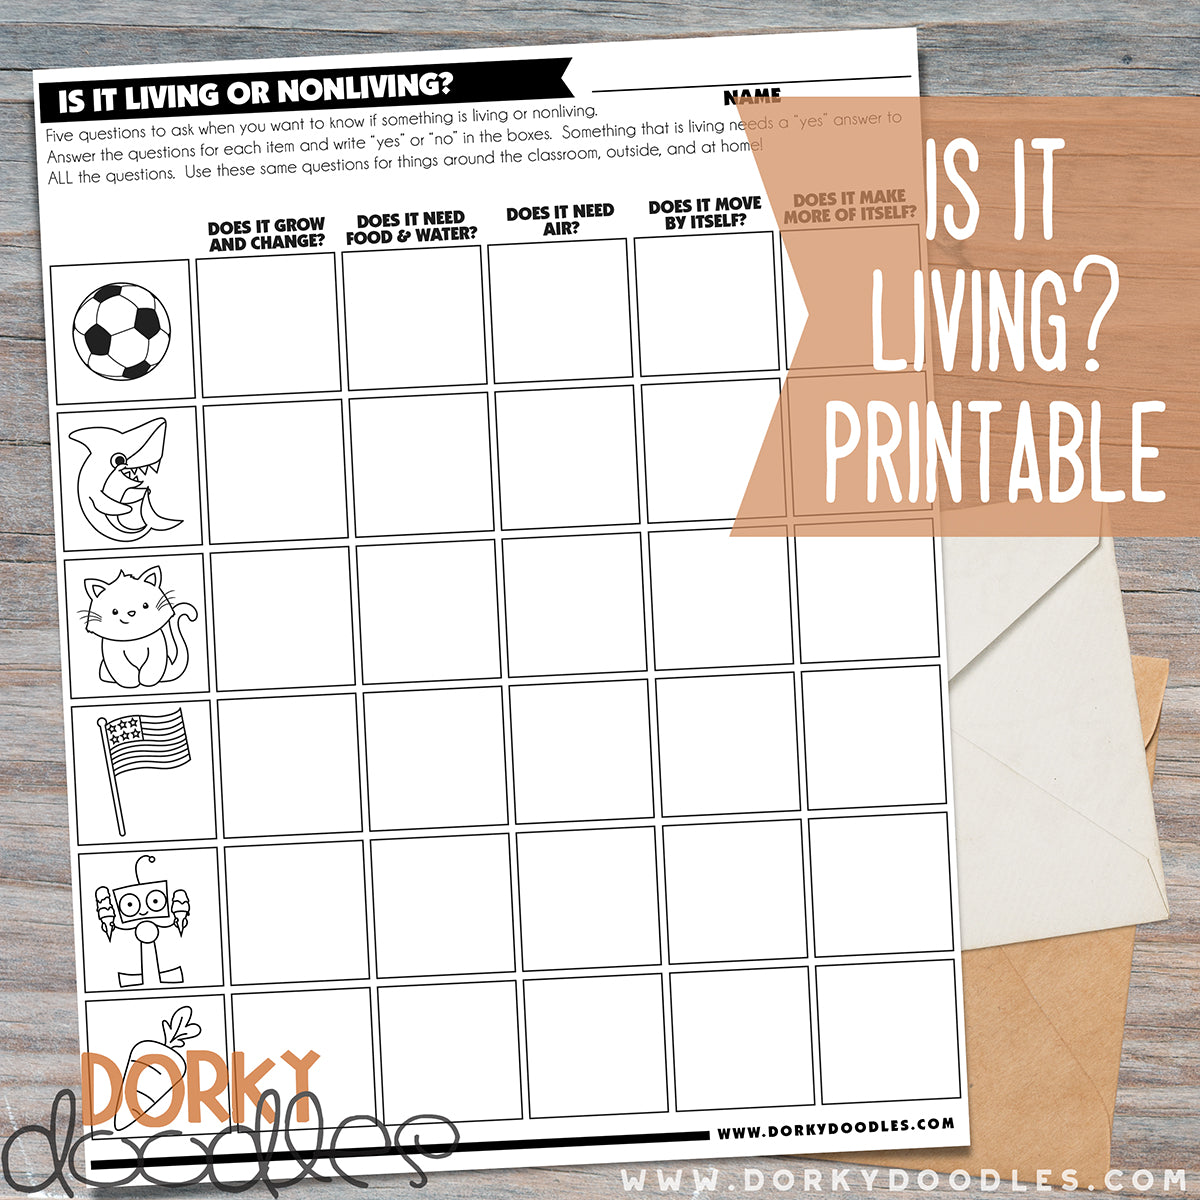 image regarding Free Printable Needs and Wants Worksheets named Is it Residing? Cost-free Printable Worksheet Dorky Doodles